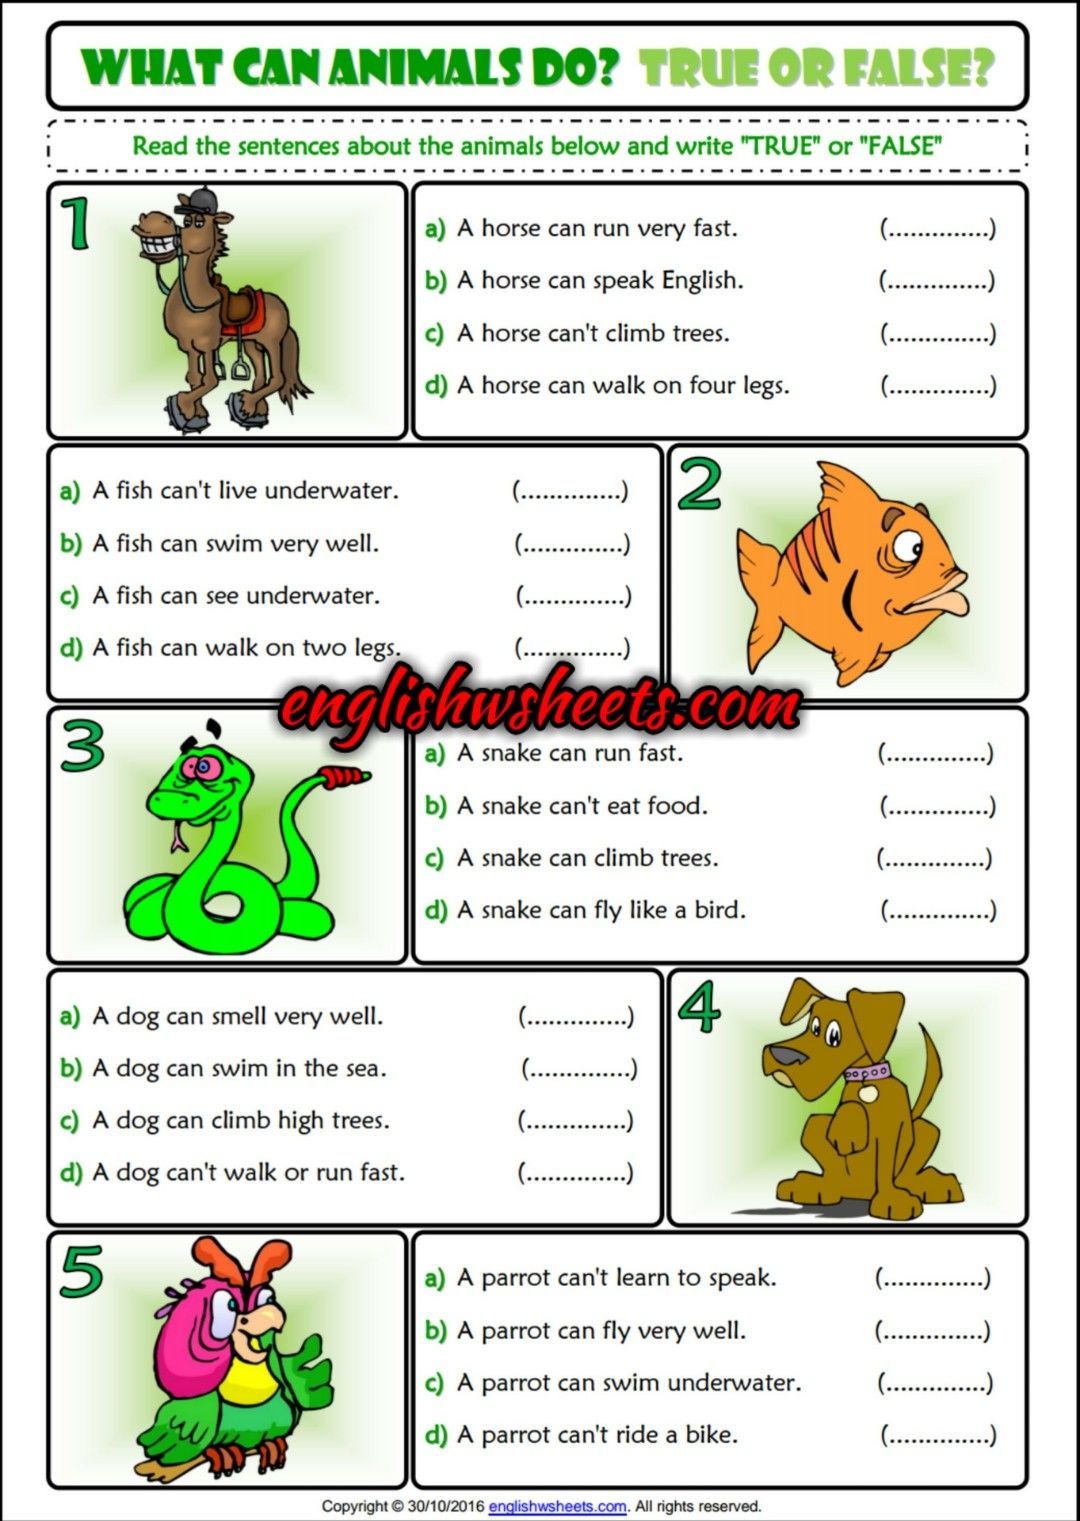 What Can Animals Do True Or False Esl Printable Grammar